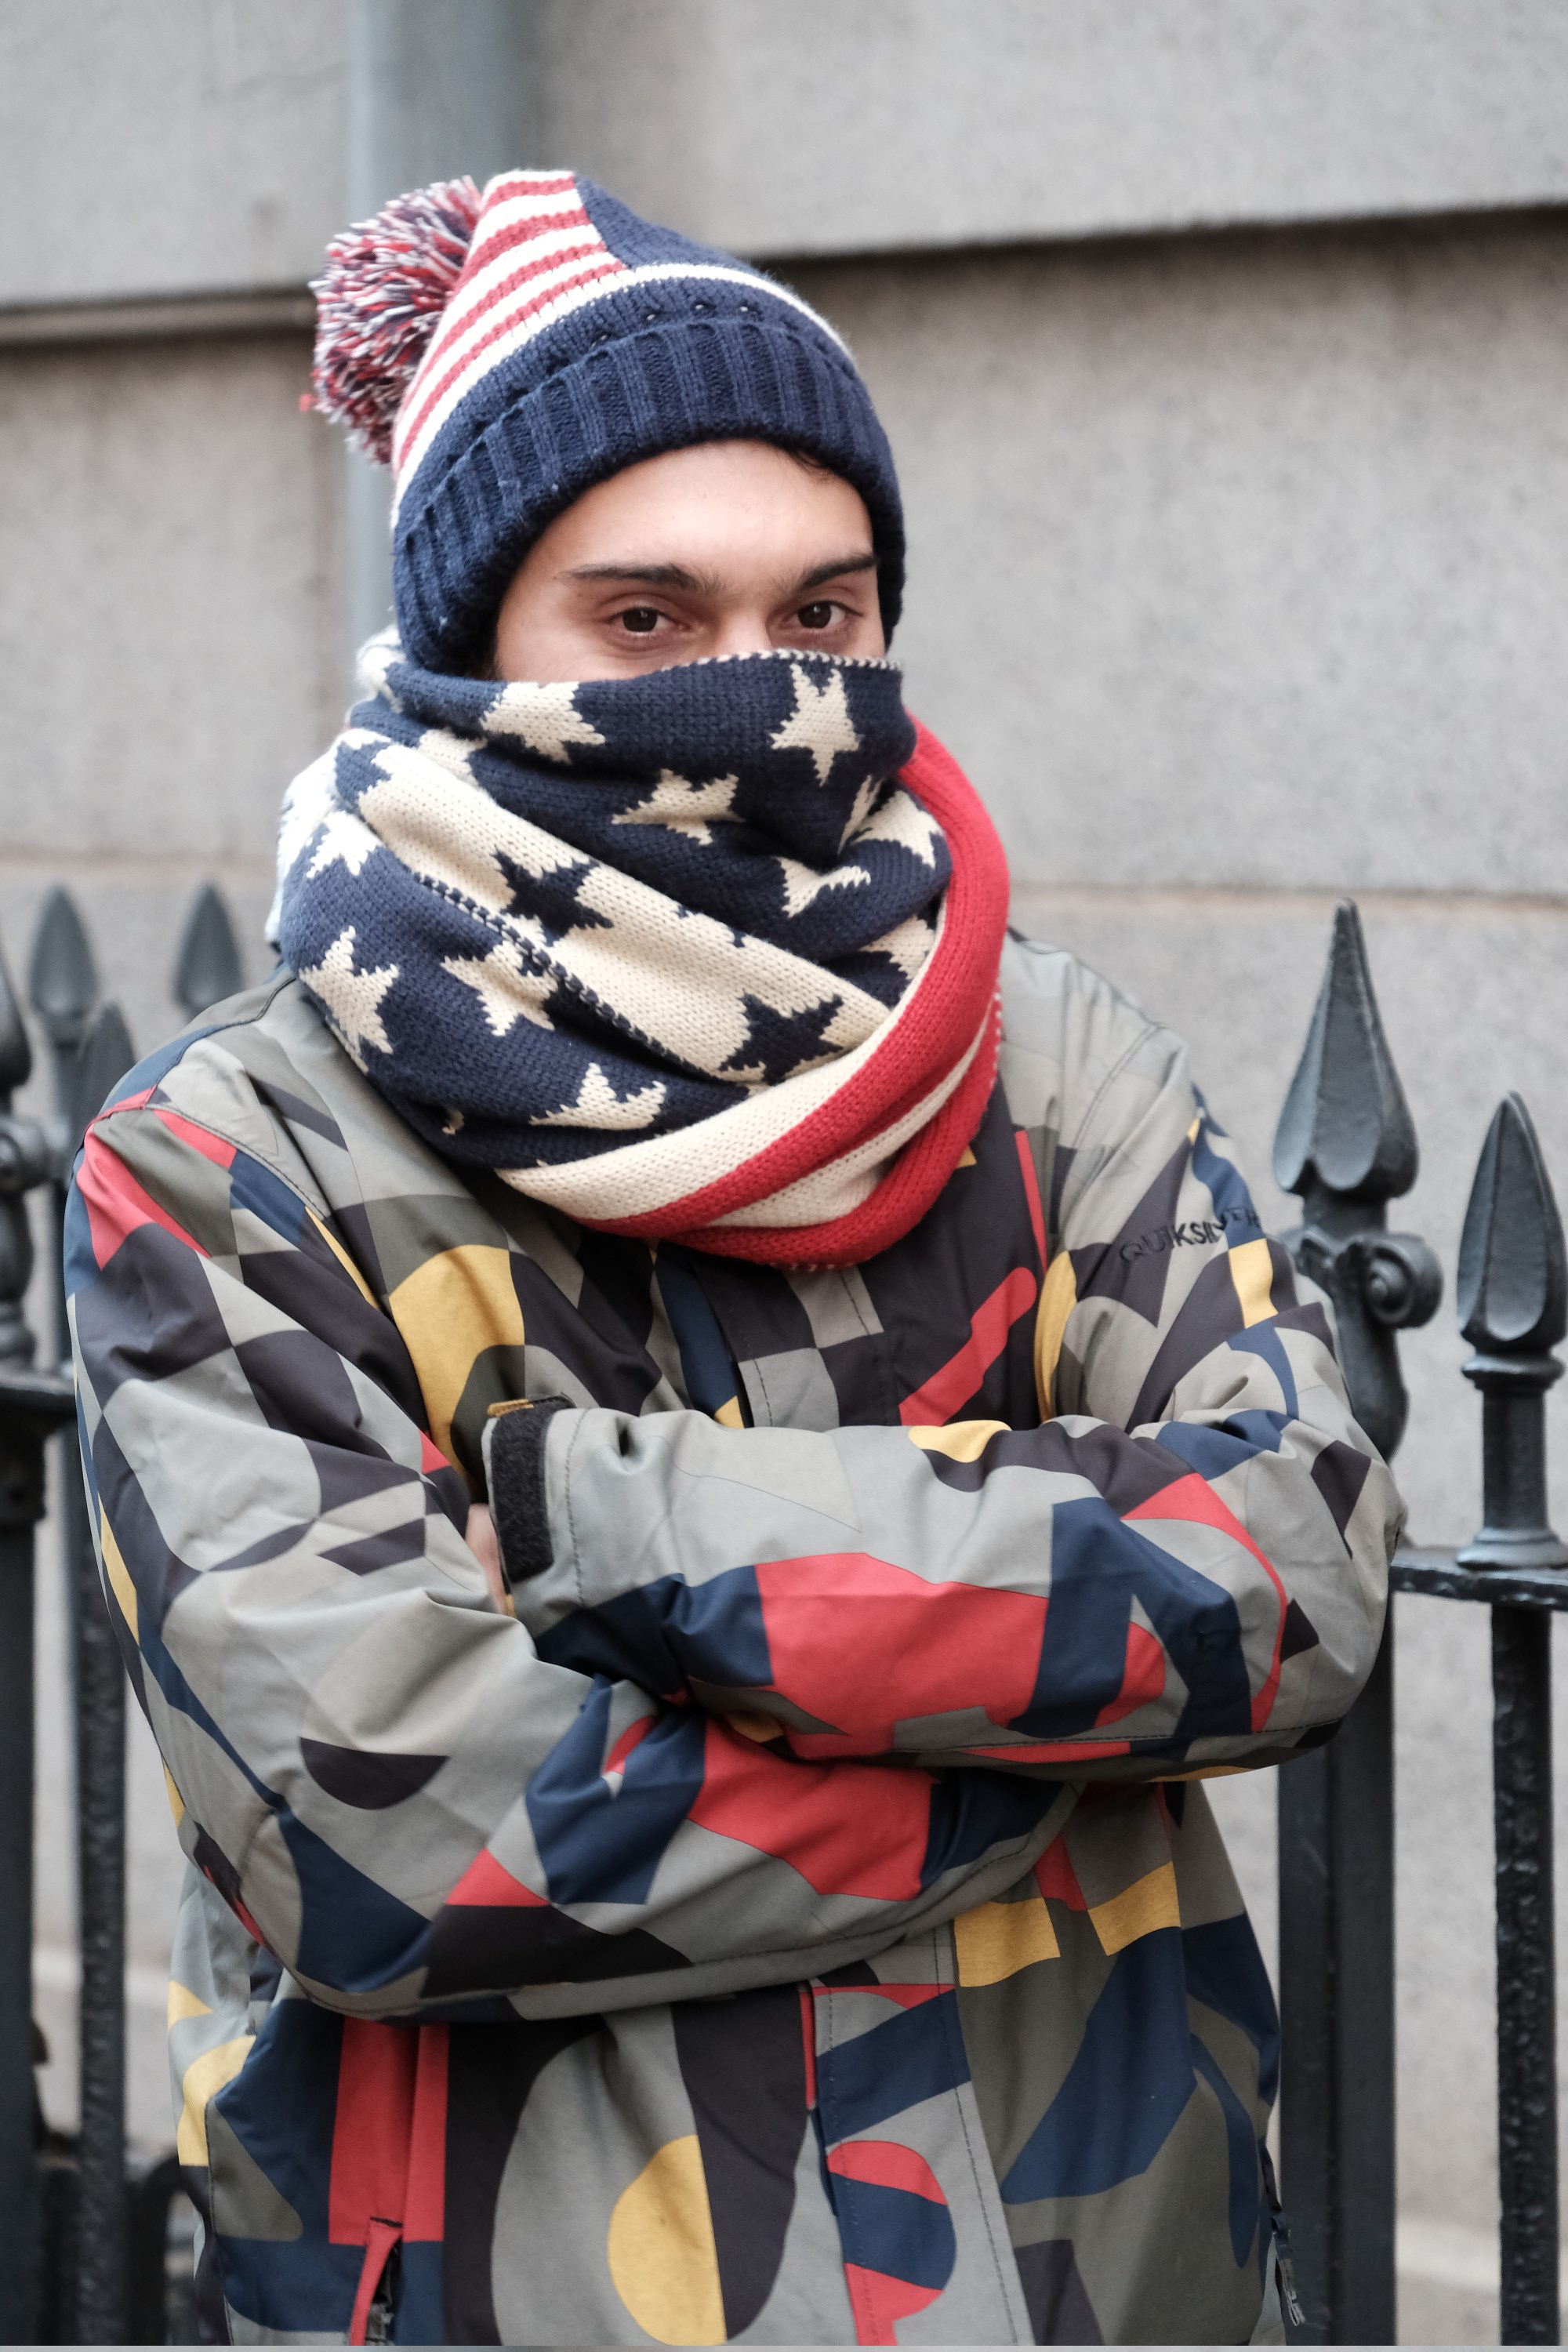 Protester wrapped in US flag